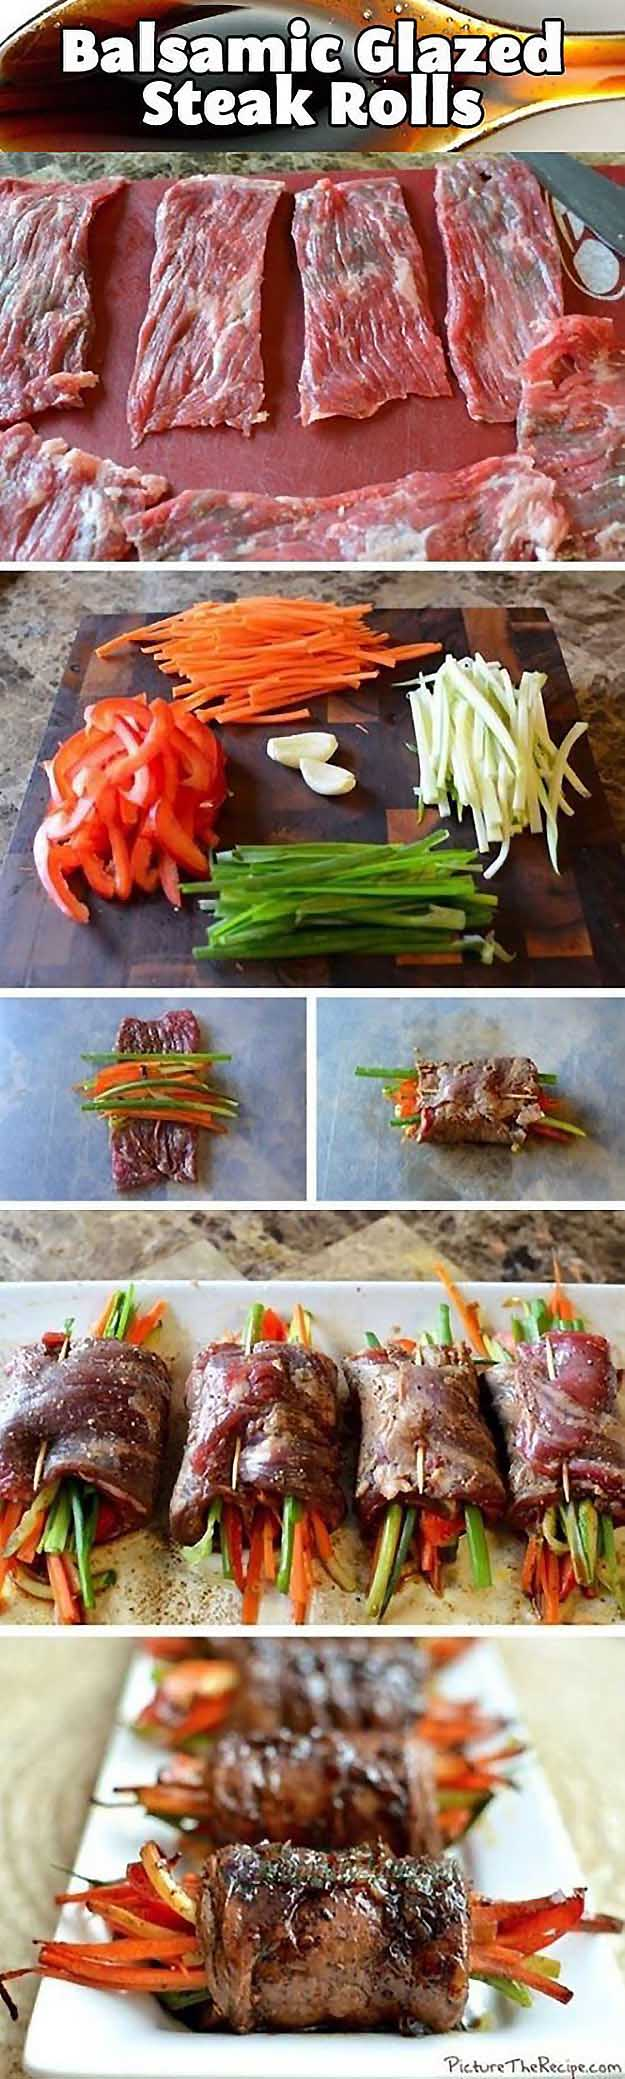 Best 4th of July Recipes and Backyard BBQ ideas - Balsamic Glazed Steak Rolls at http://diyjoy.com/best-4th-of-july-recipes-ideas